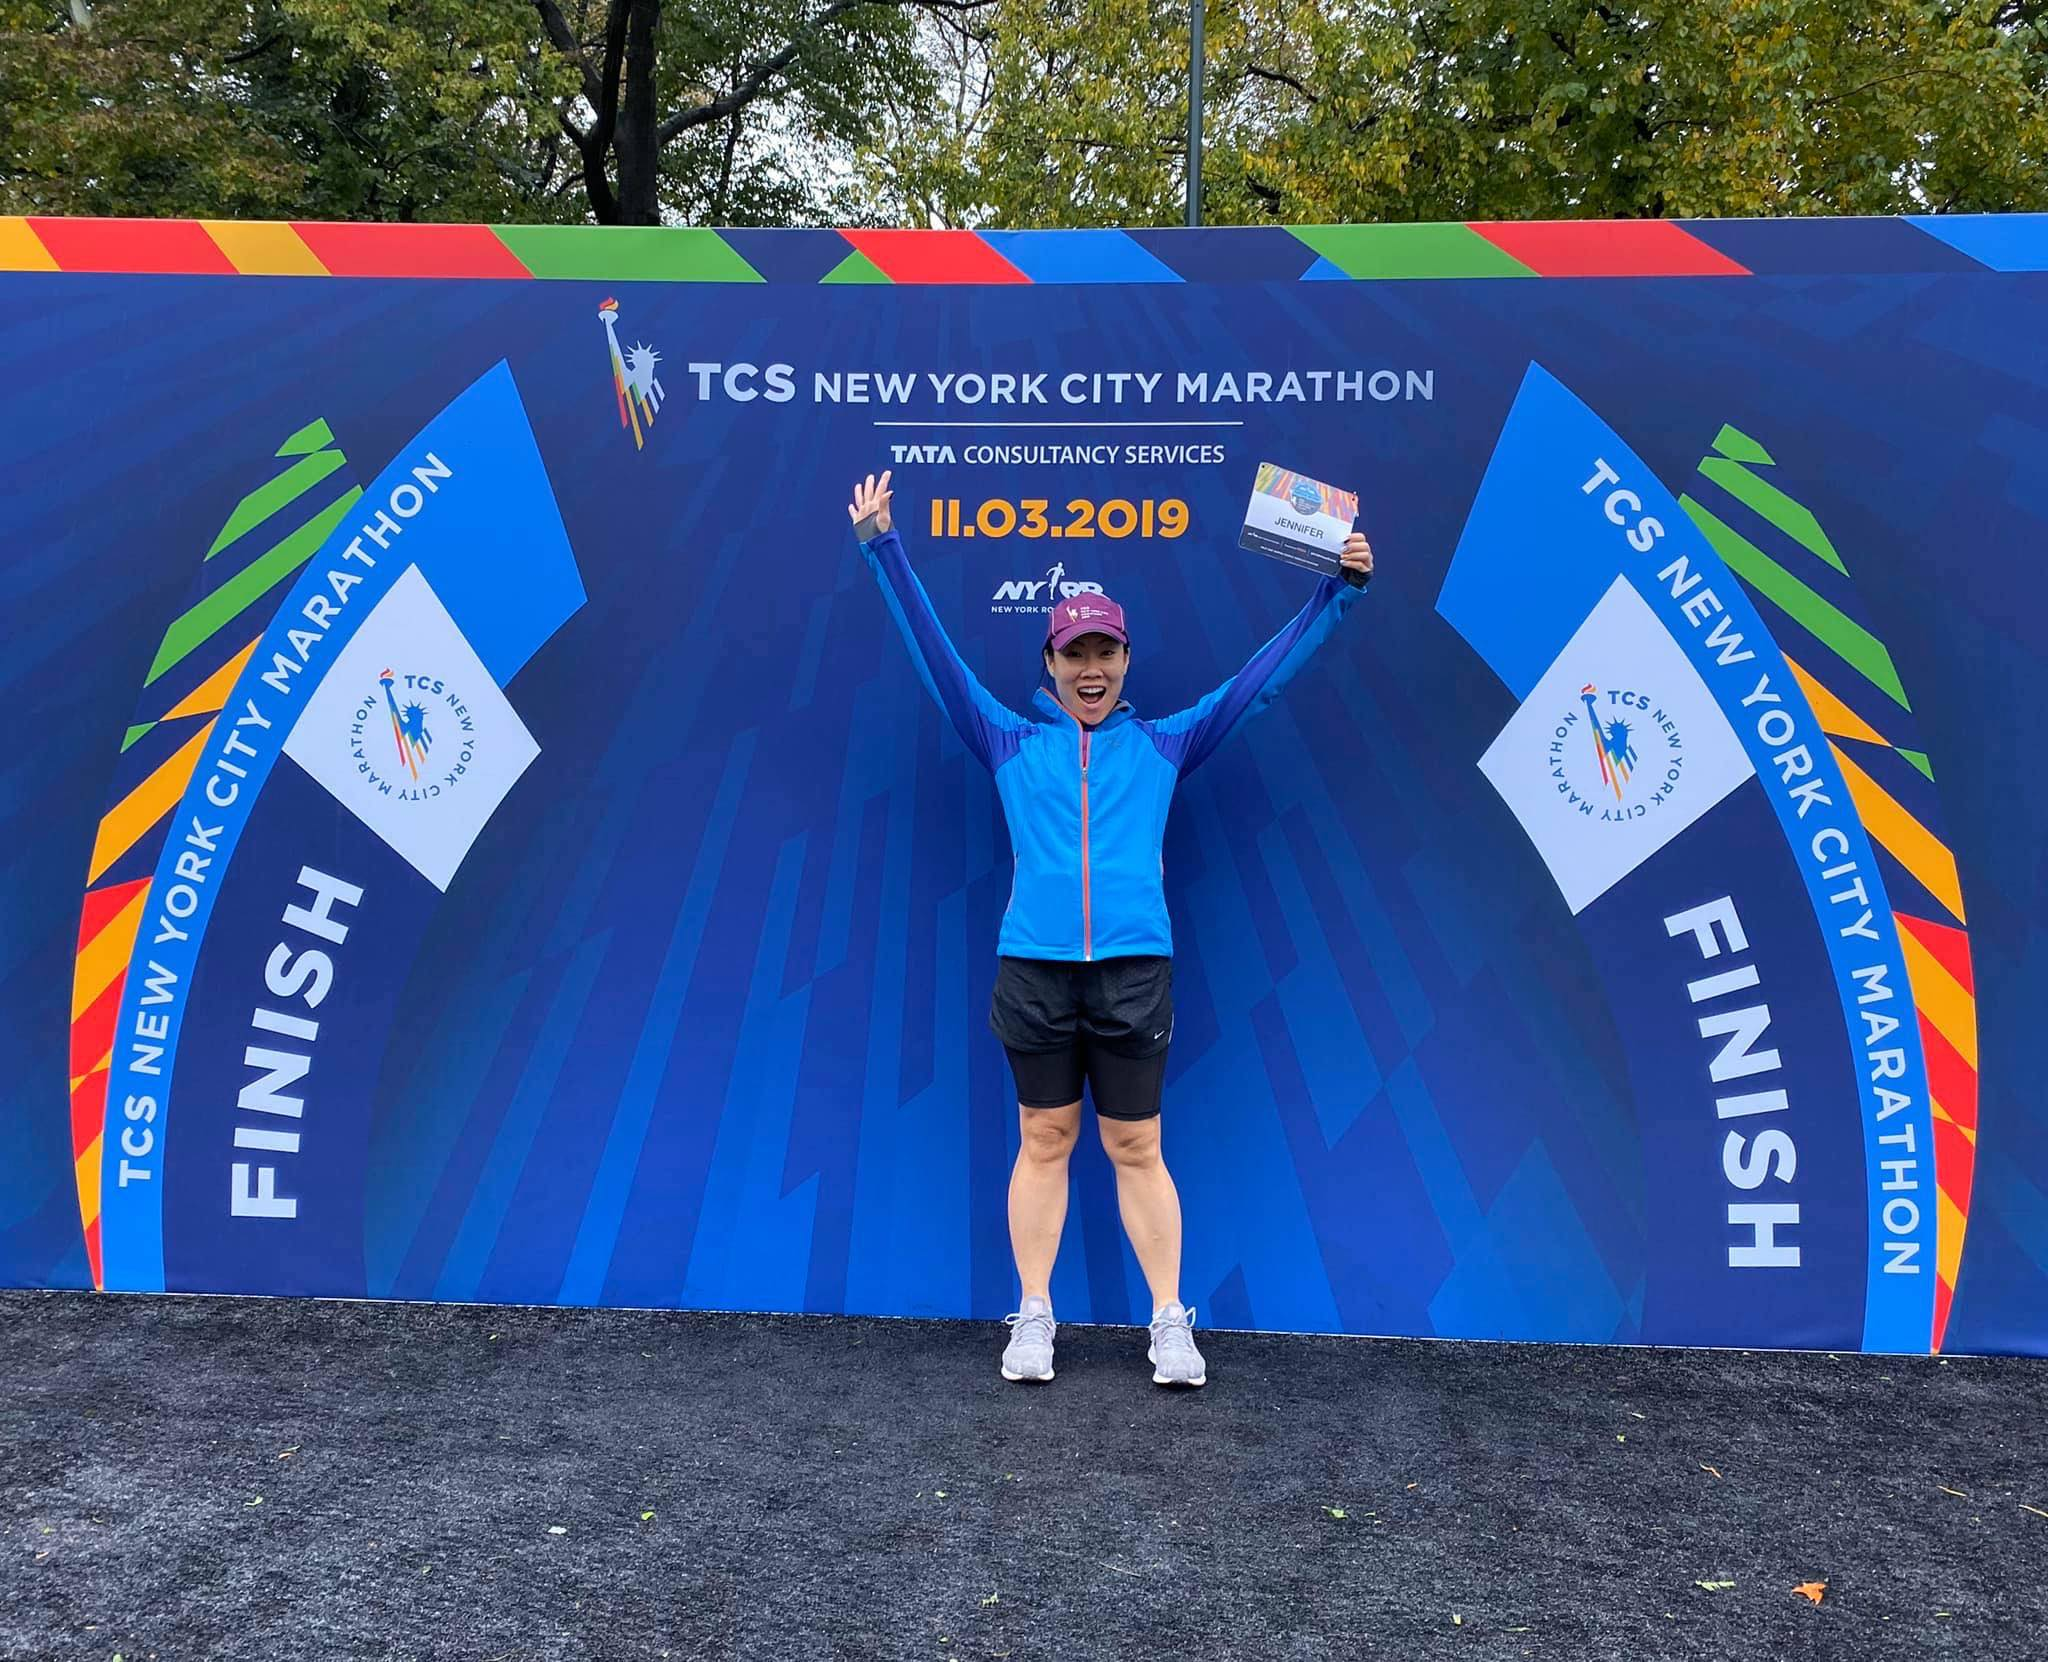 Jennifer Pyun holds her TCS NYC Marathon-Virtual 26.2M bib by the marathon finish line in Central Park.